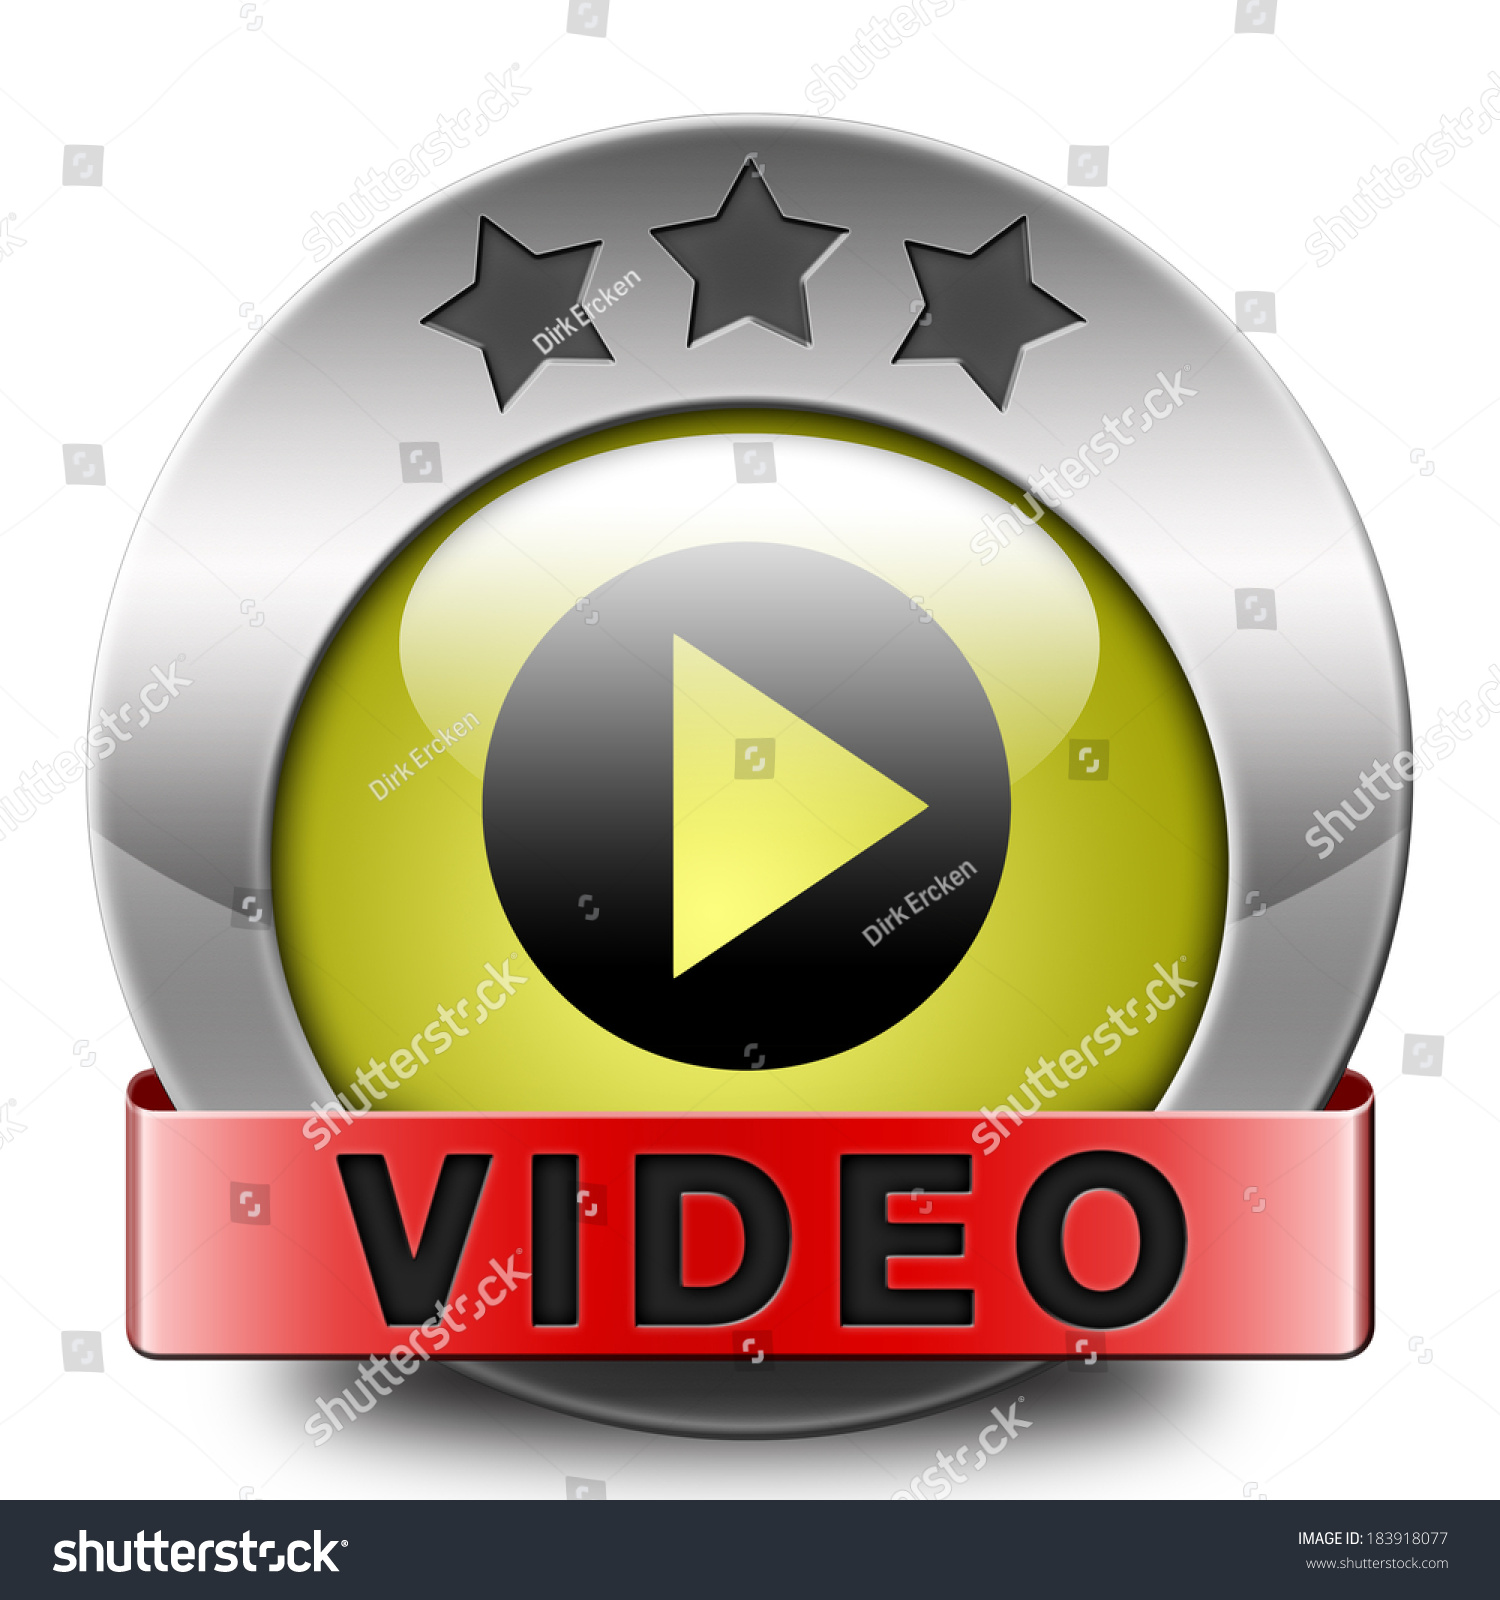 Give me a clip watch video online 42